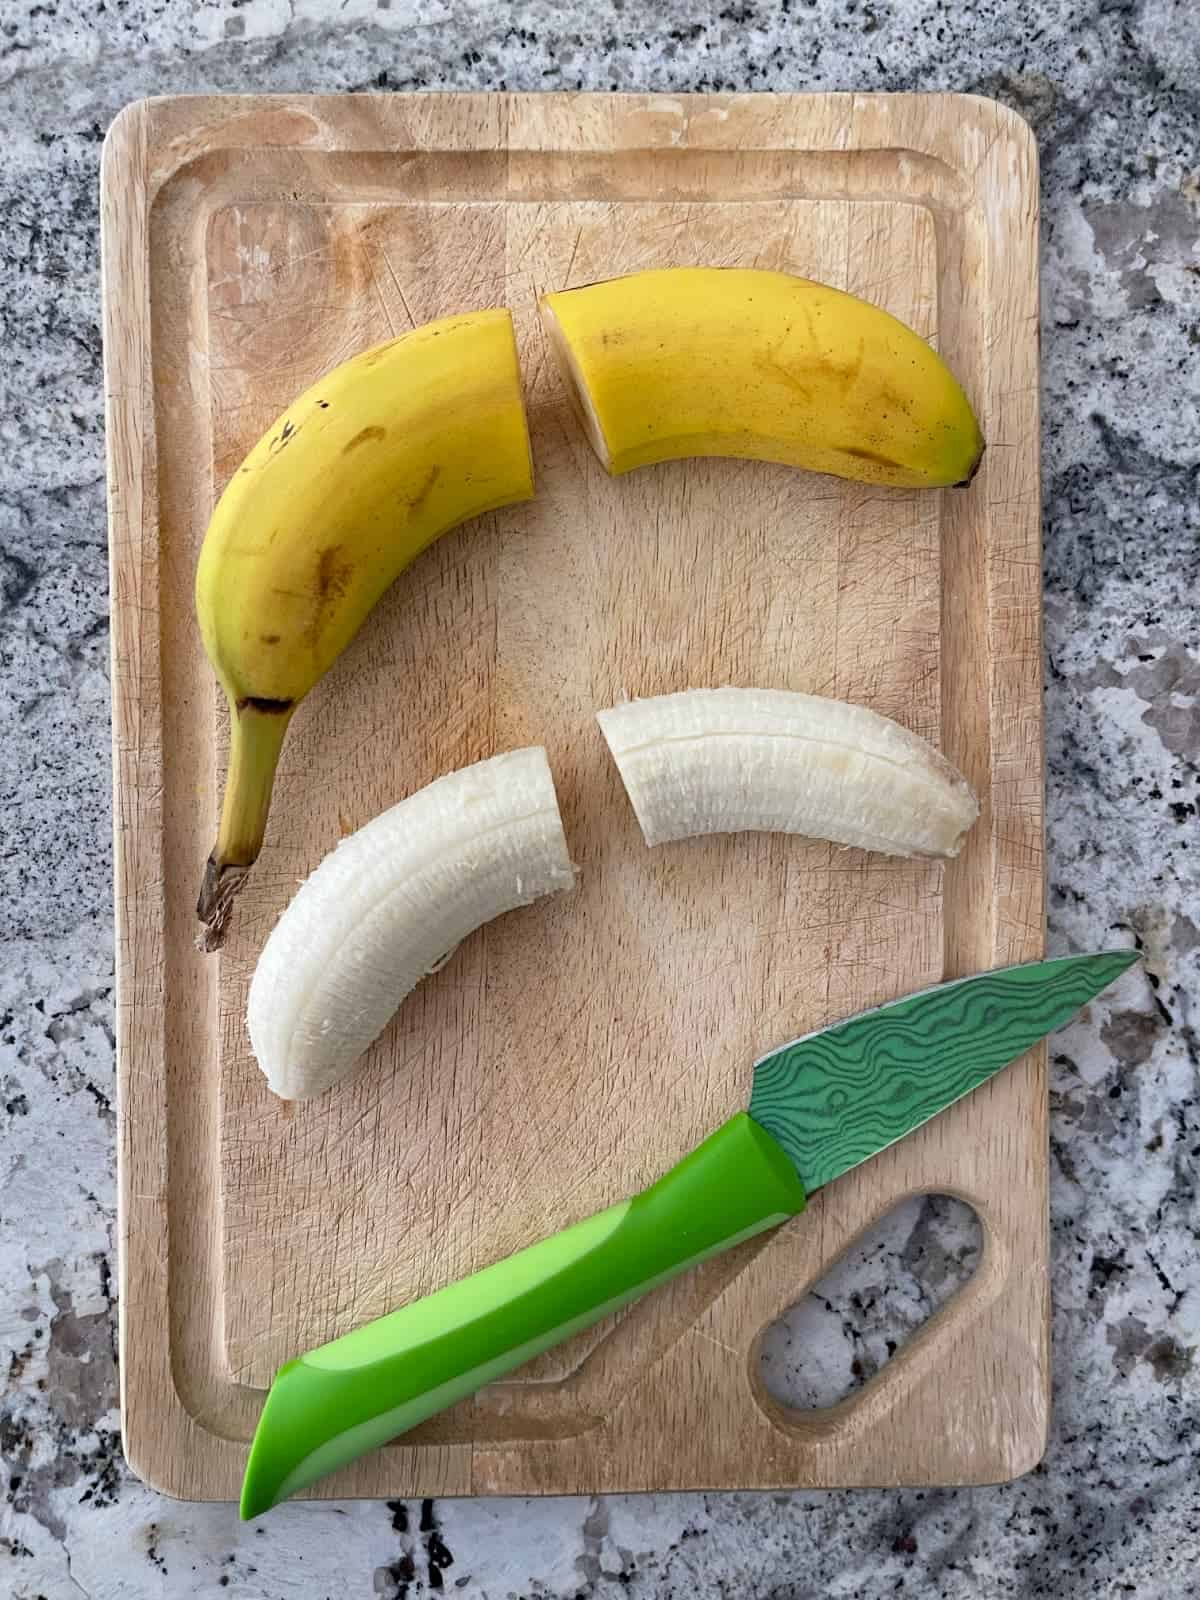 Two bananas on wood cutting board, one peeled the other unpeeled, with green knife.